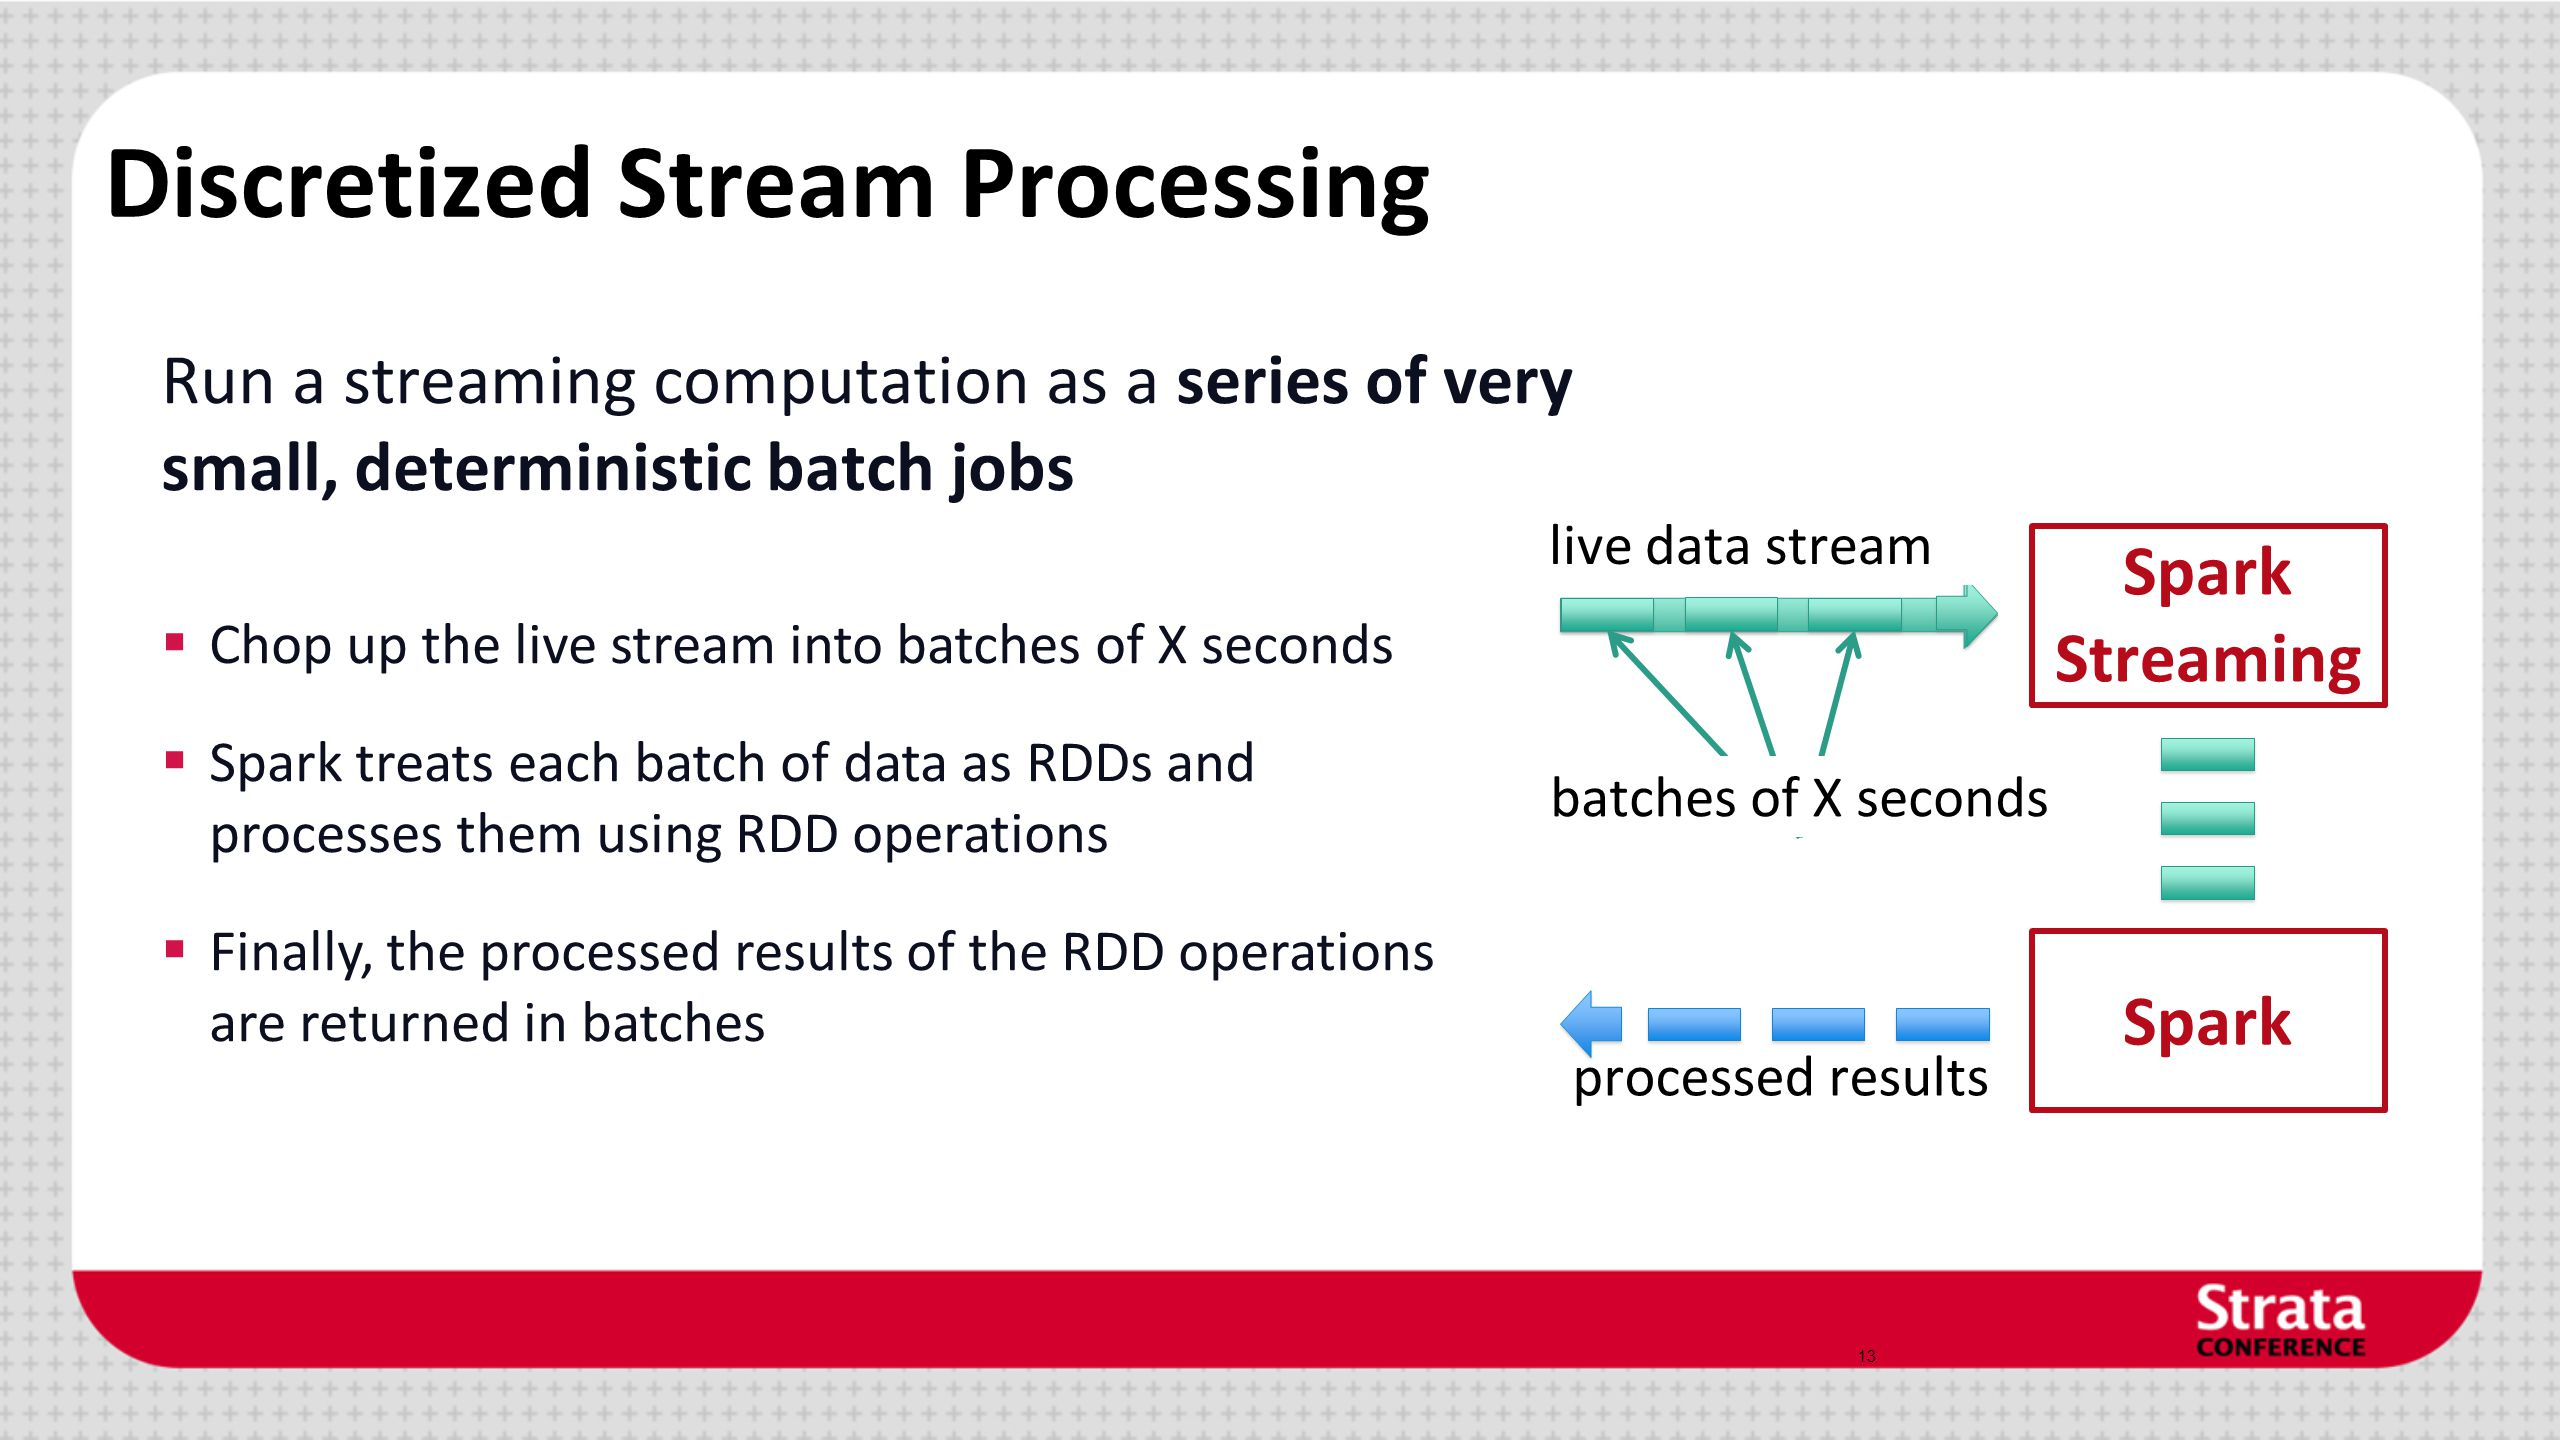 Discretized Stream Processing Run a streaming computation as a series of very small, deterministic batch jobs 13 Spark Streaming batches of X seconds live data stream processed results  Chop up the live stream into batches of X seconds  Spark treats each batch of data as RDDs and processes them using RDD operations  Finally, the processed results of the RDD operations are returned in batches